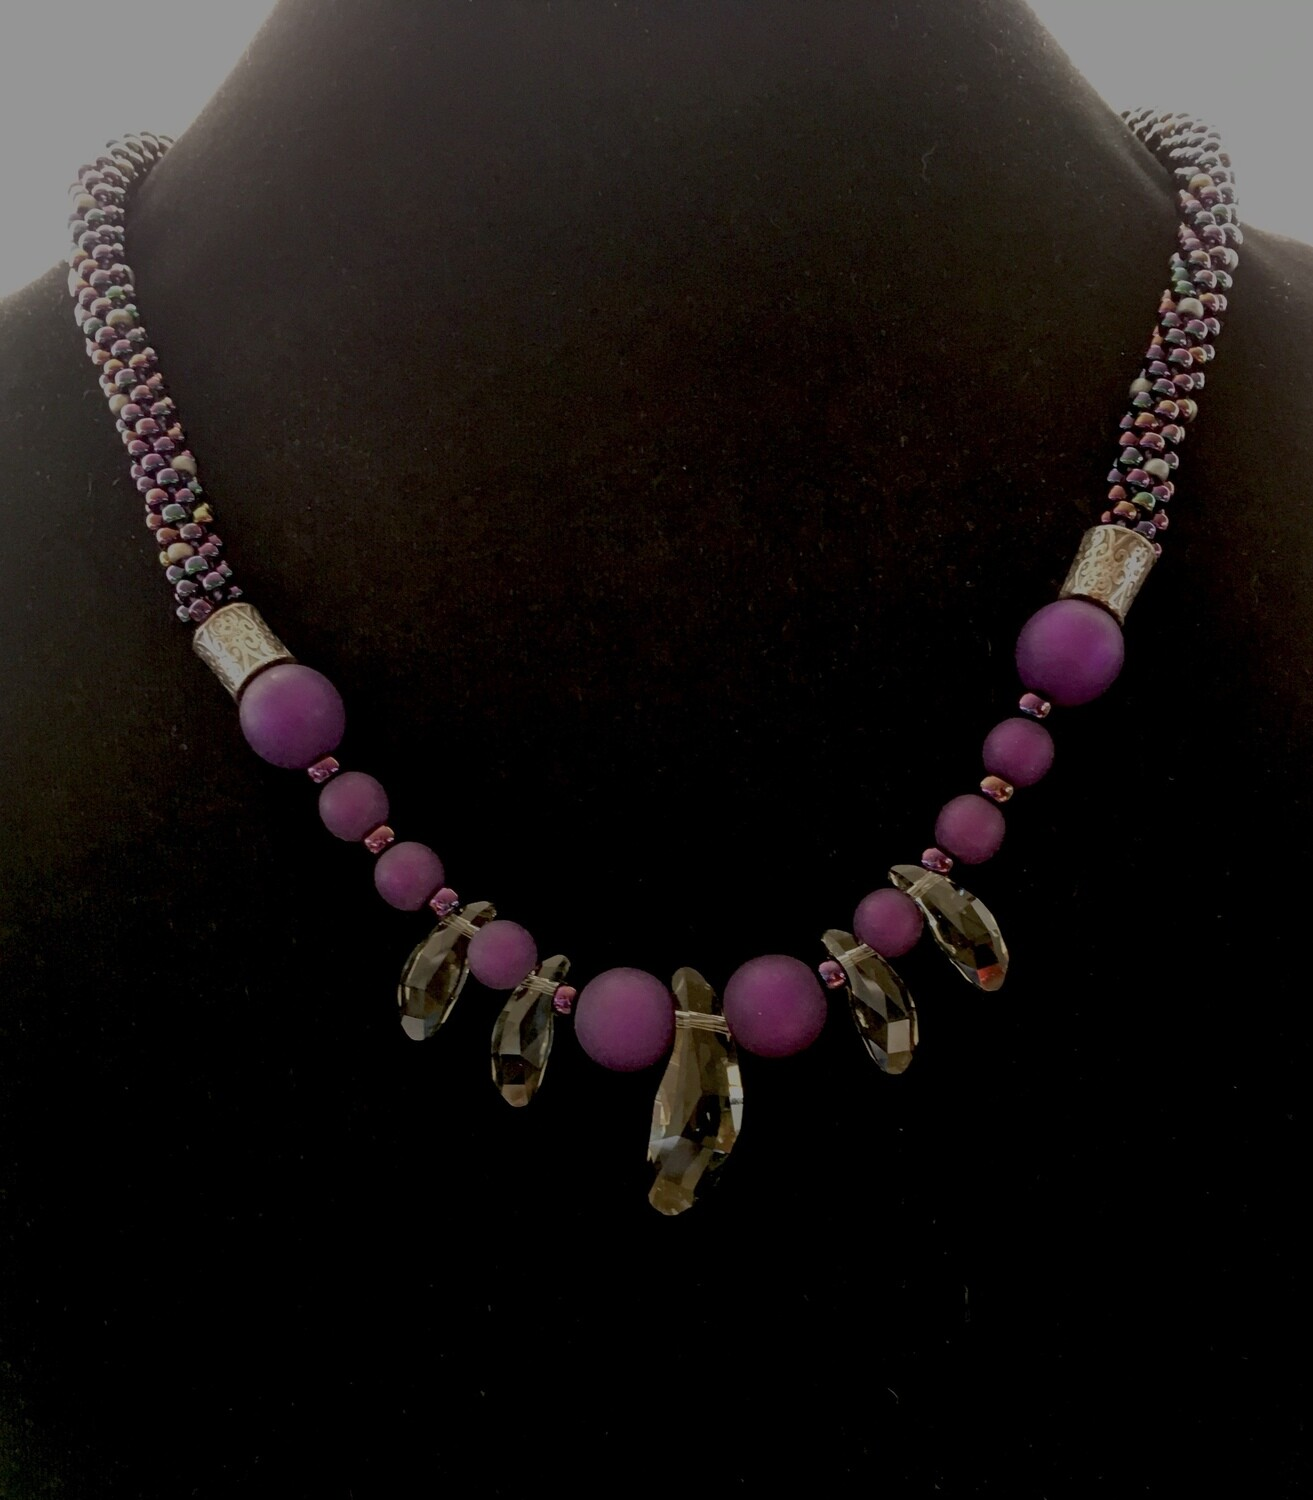 Purple Kumihumo necklace with glossy beads and dagger crystal pendant